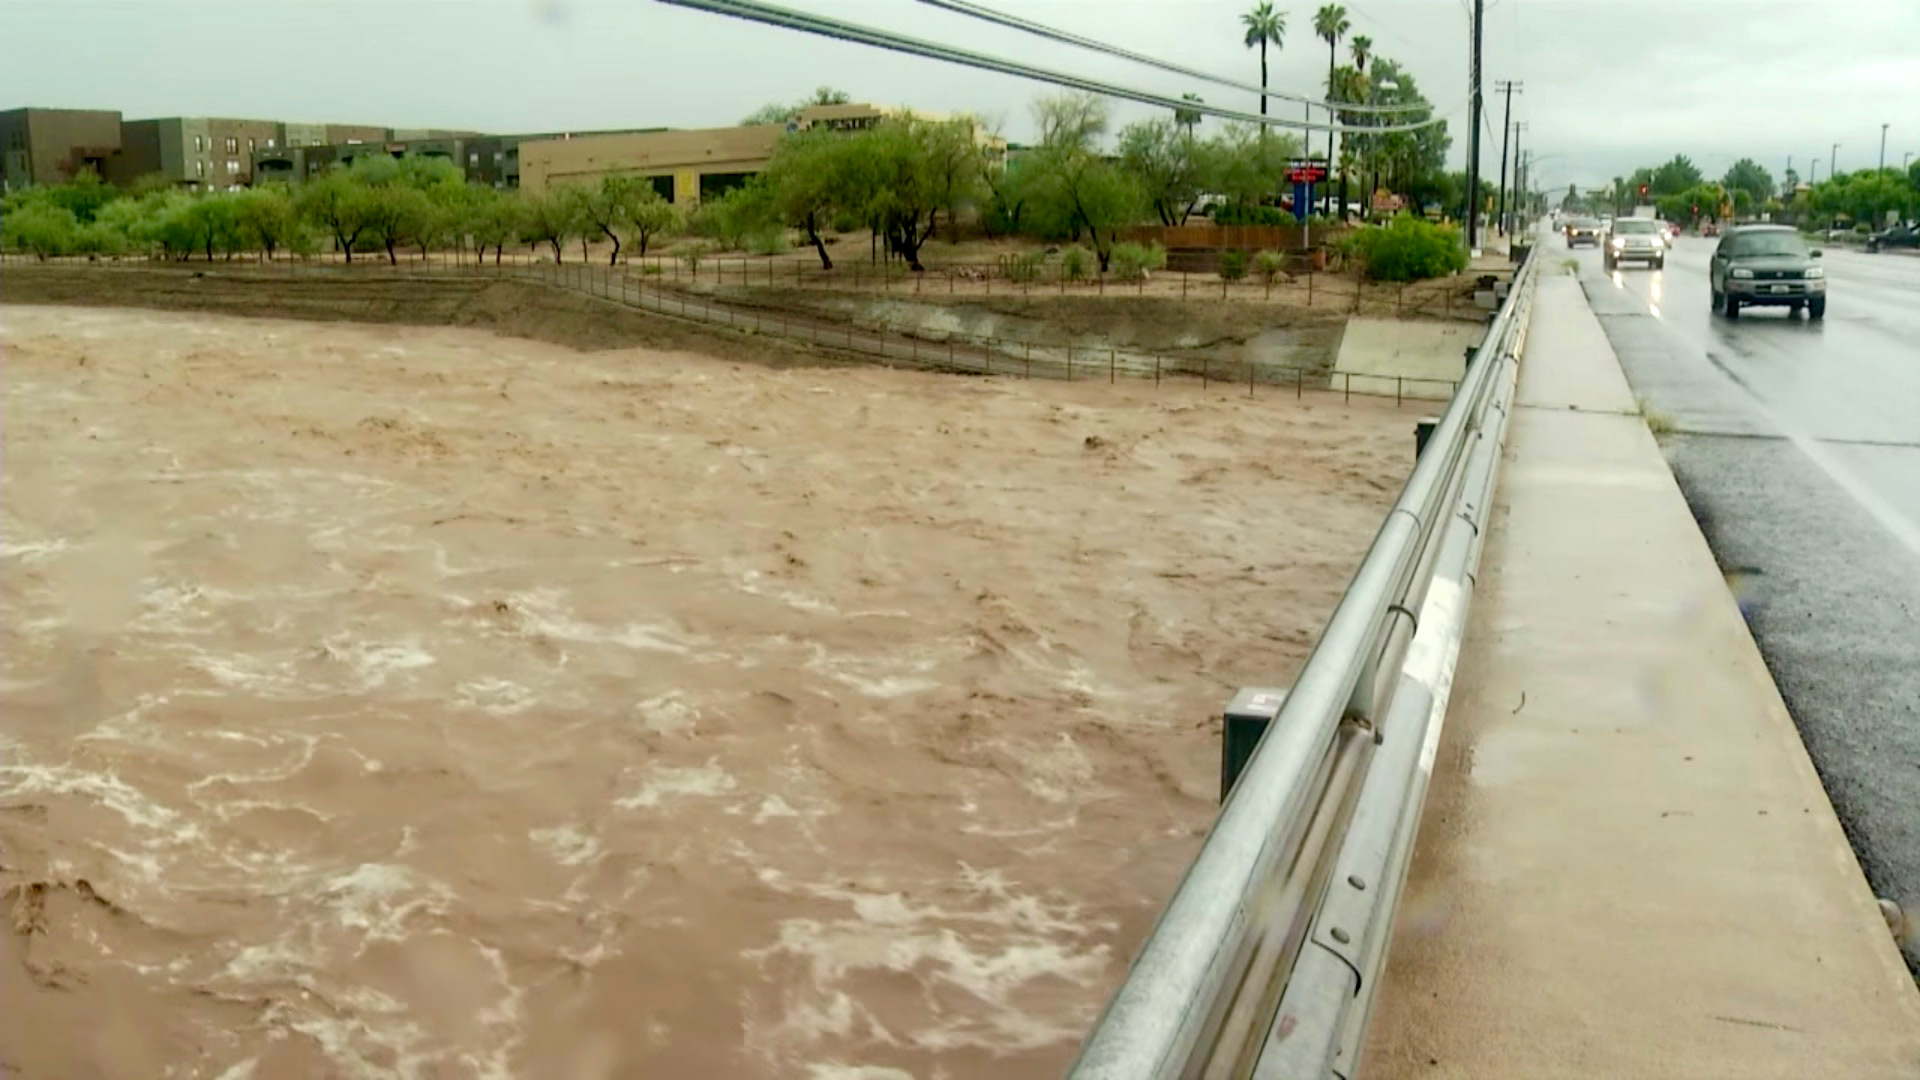 A wash in Tucson begins to flood its banks after heavy monsoon rain.